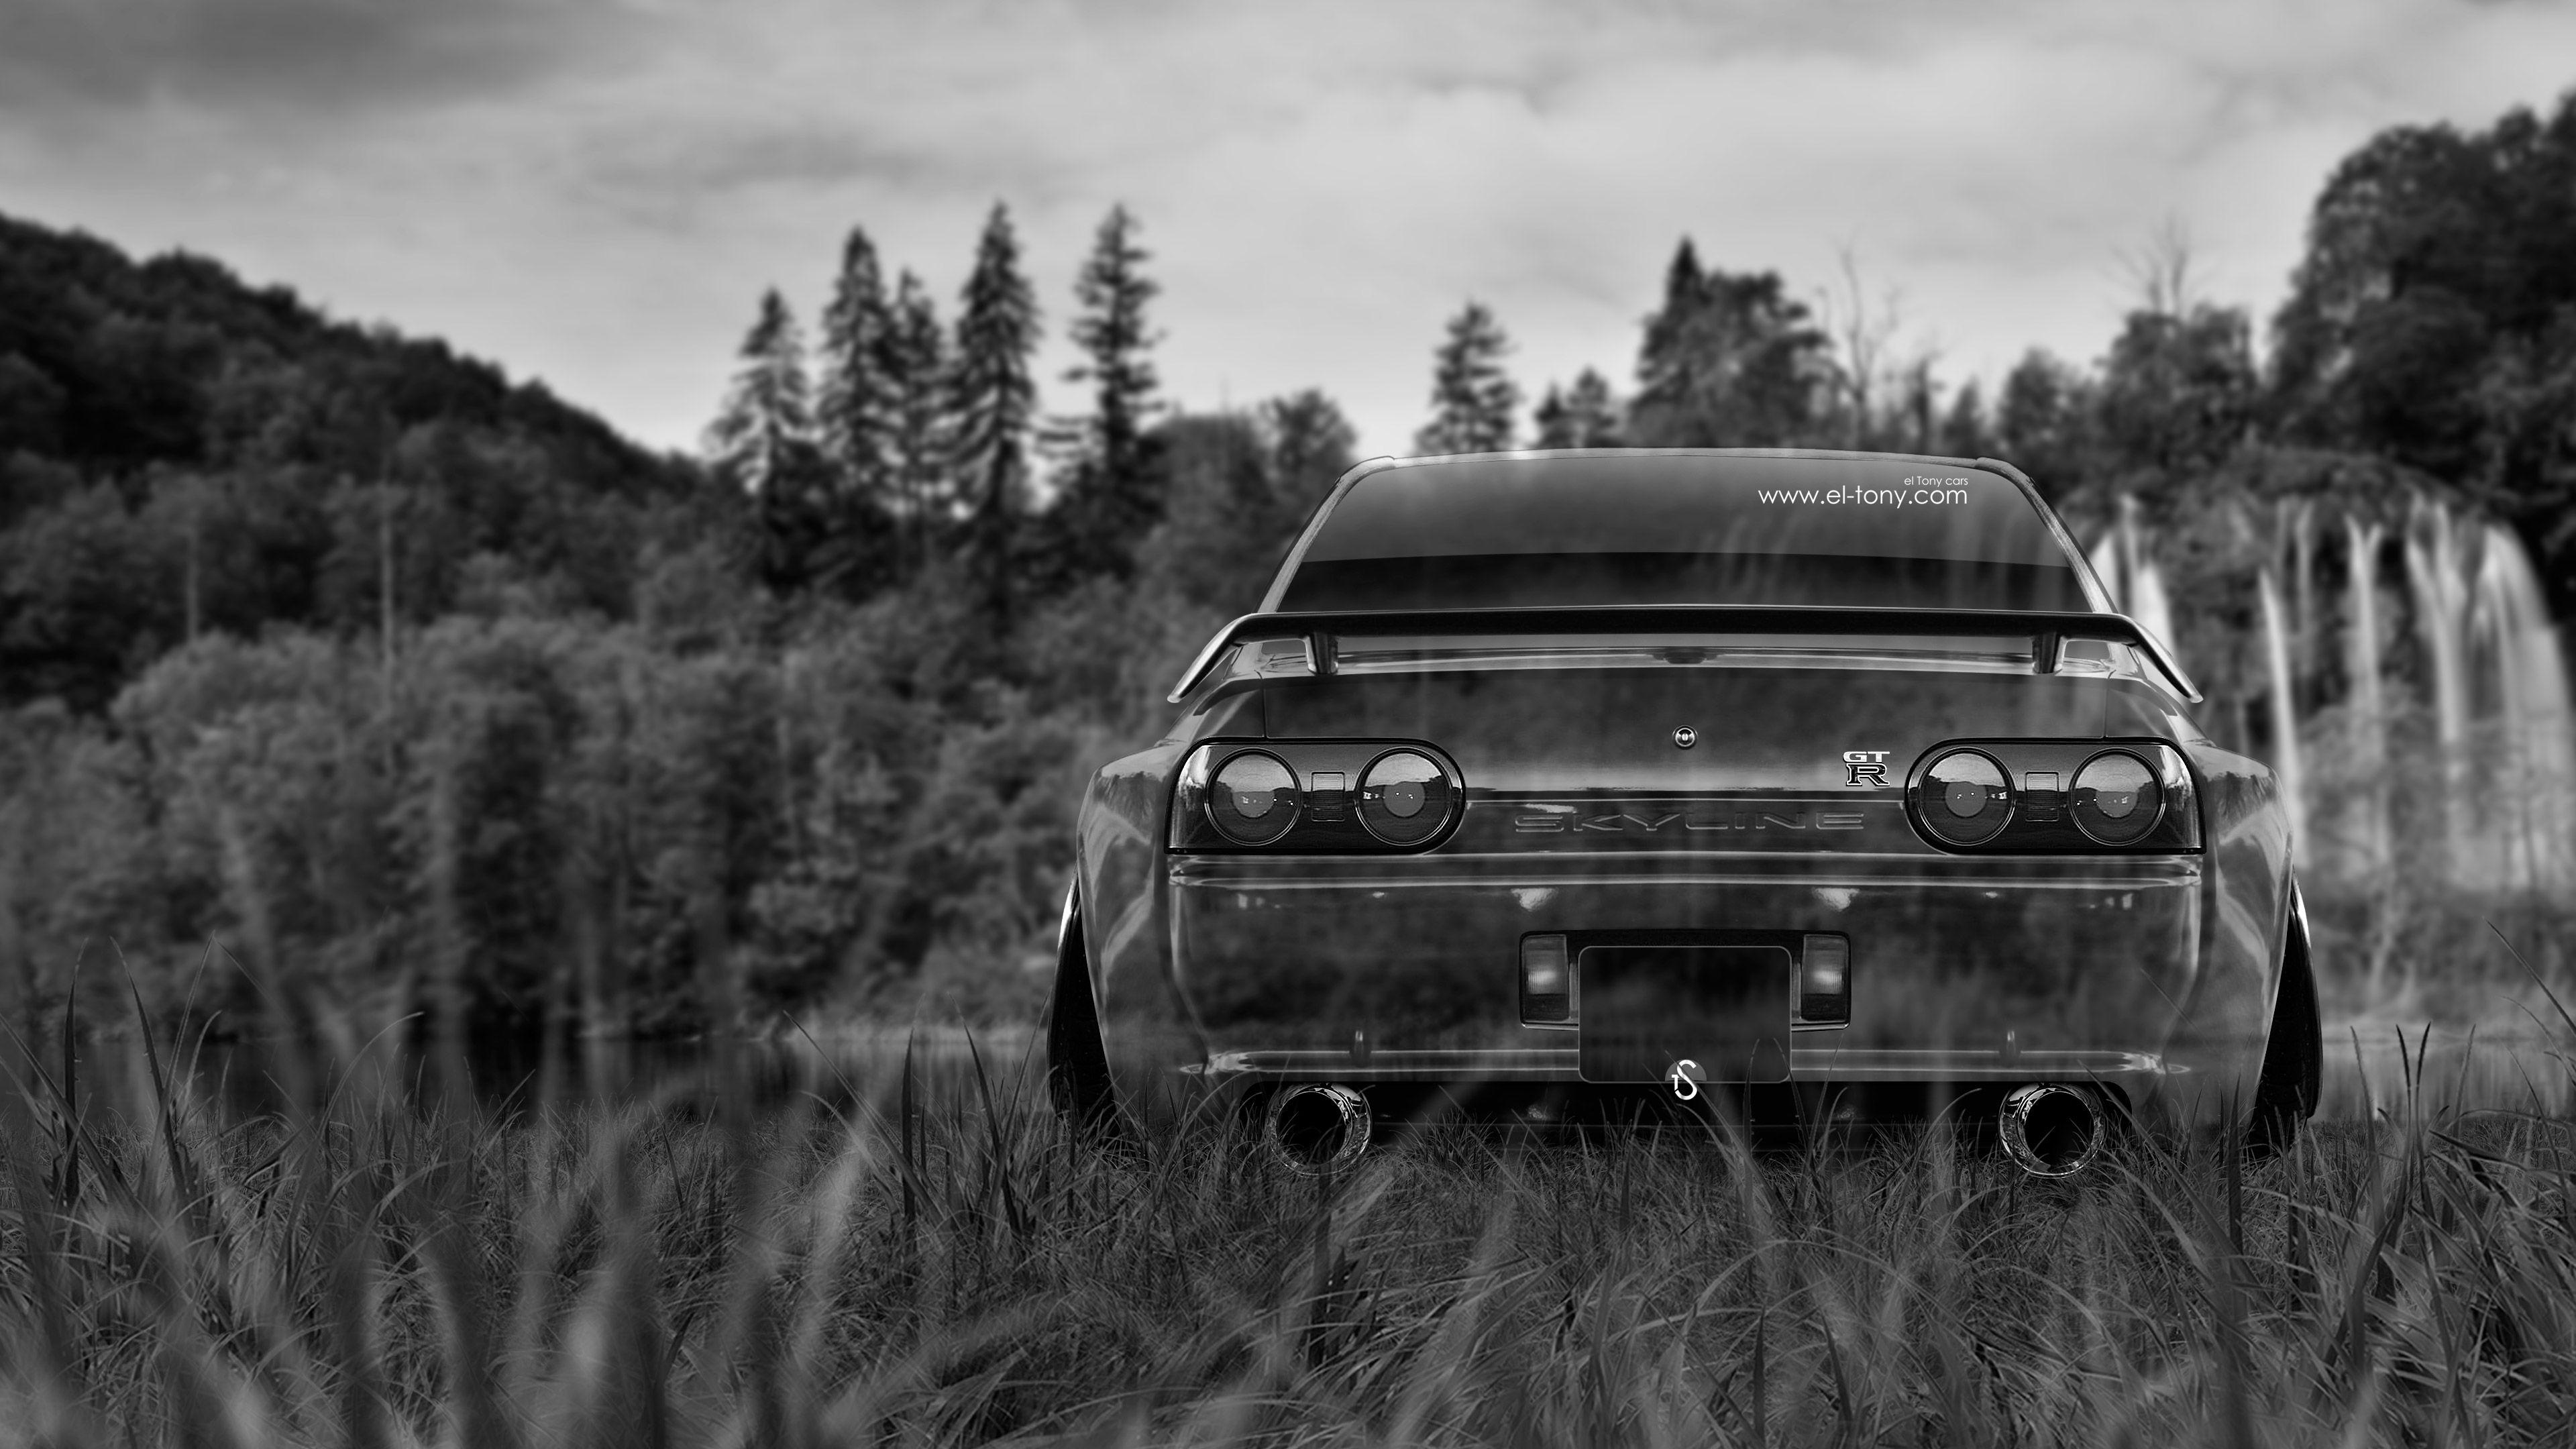 Nissan Skyline GTR R32 JDM Back Crystal Nature Car 2015 Wallpapers .